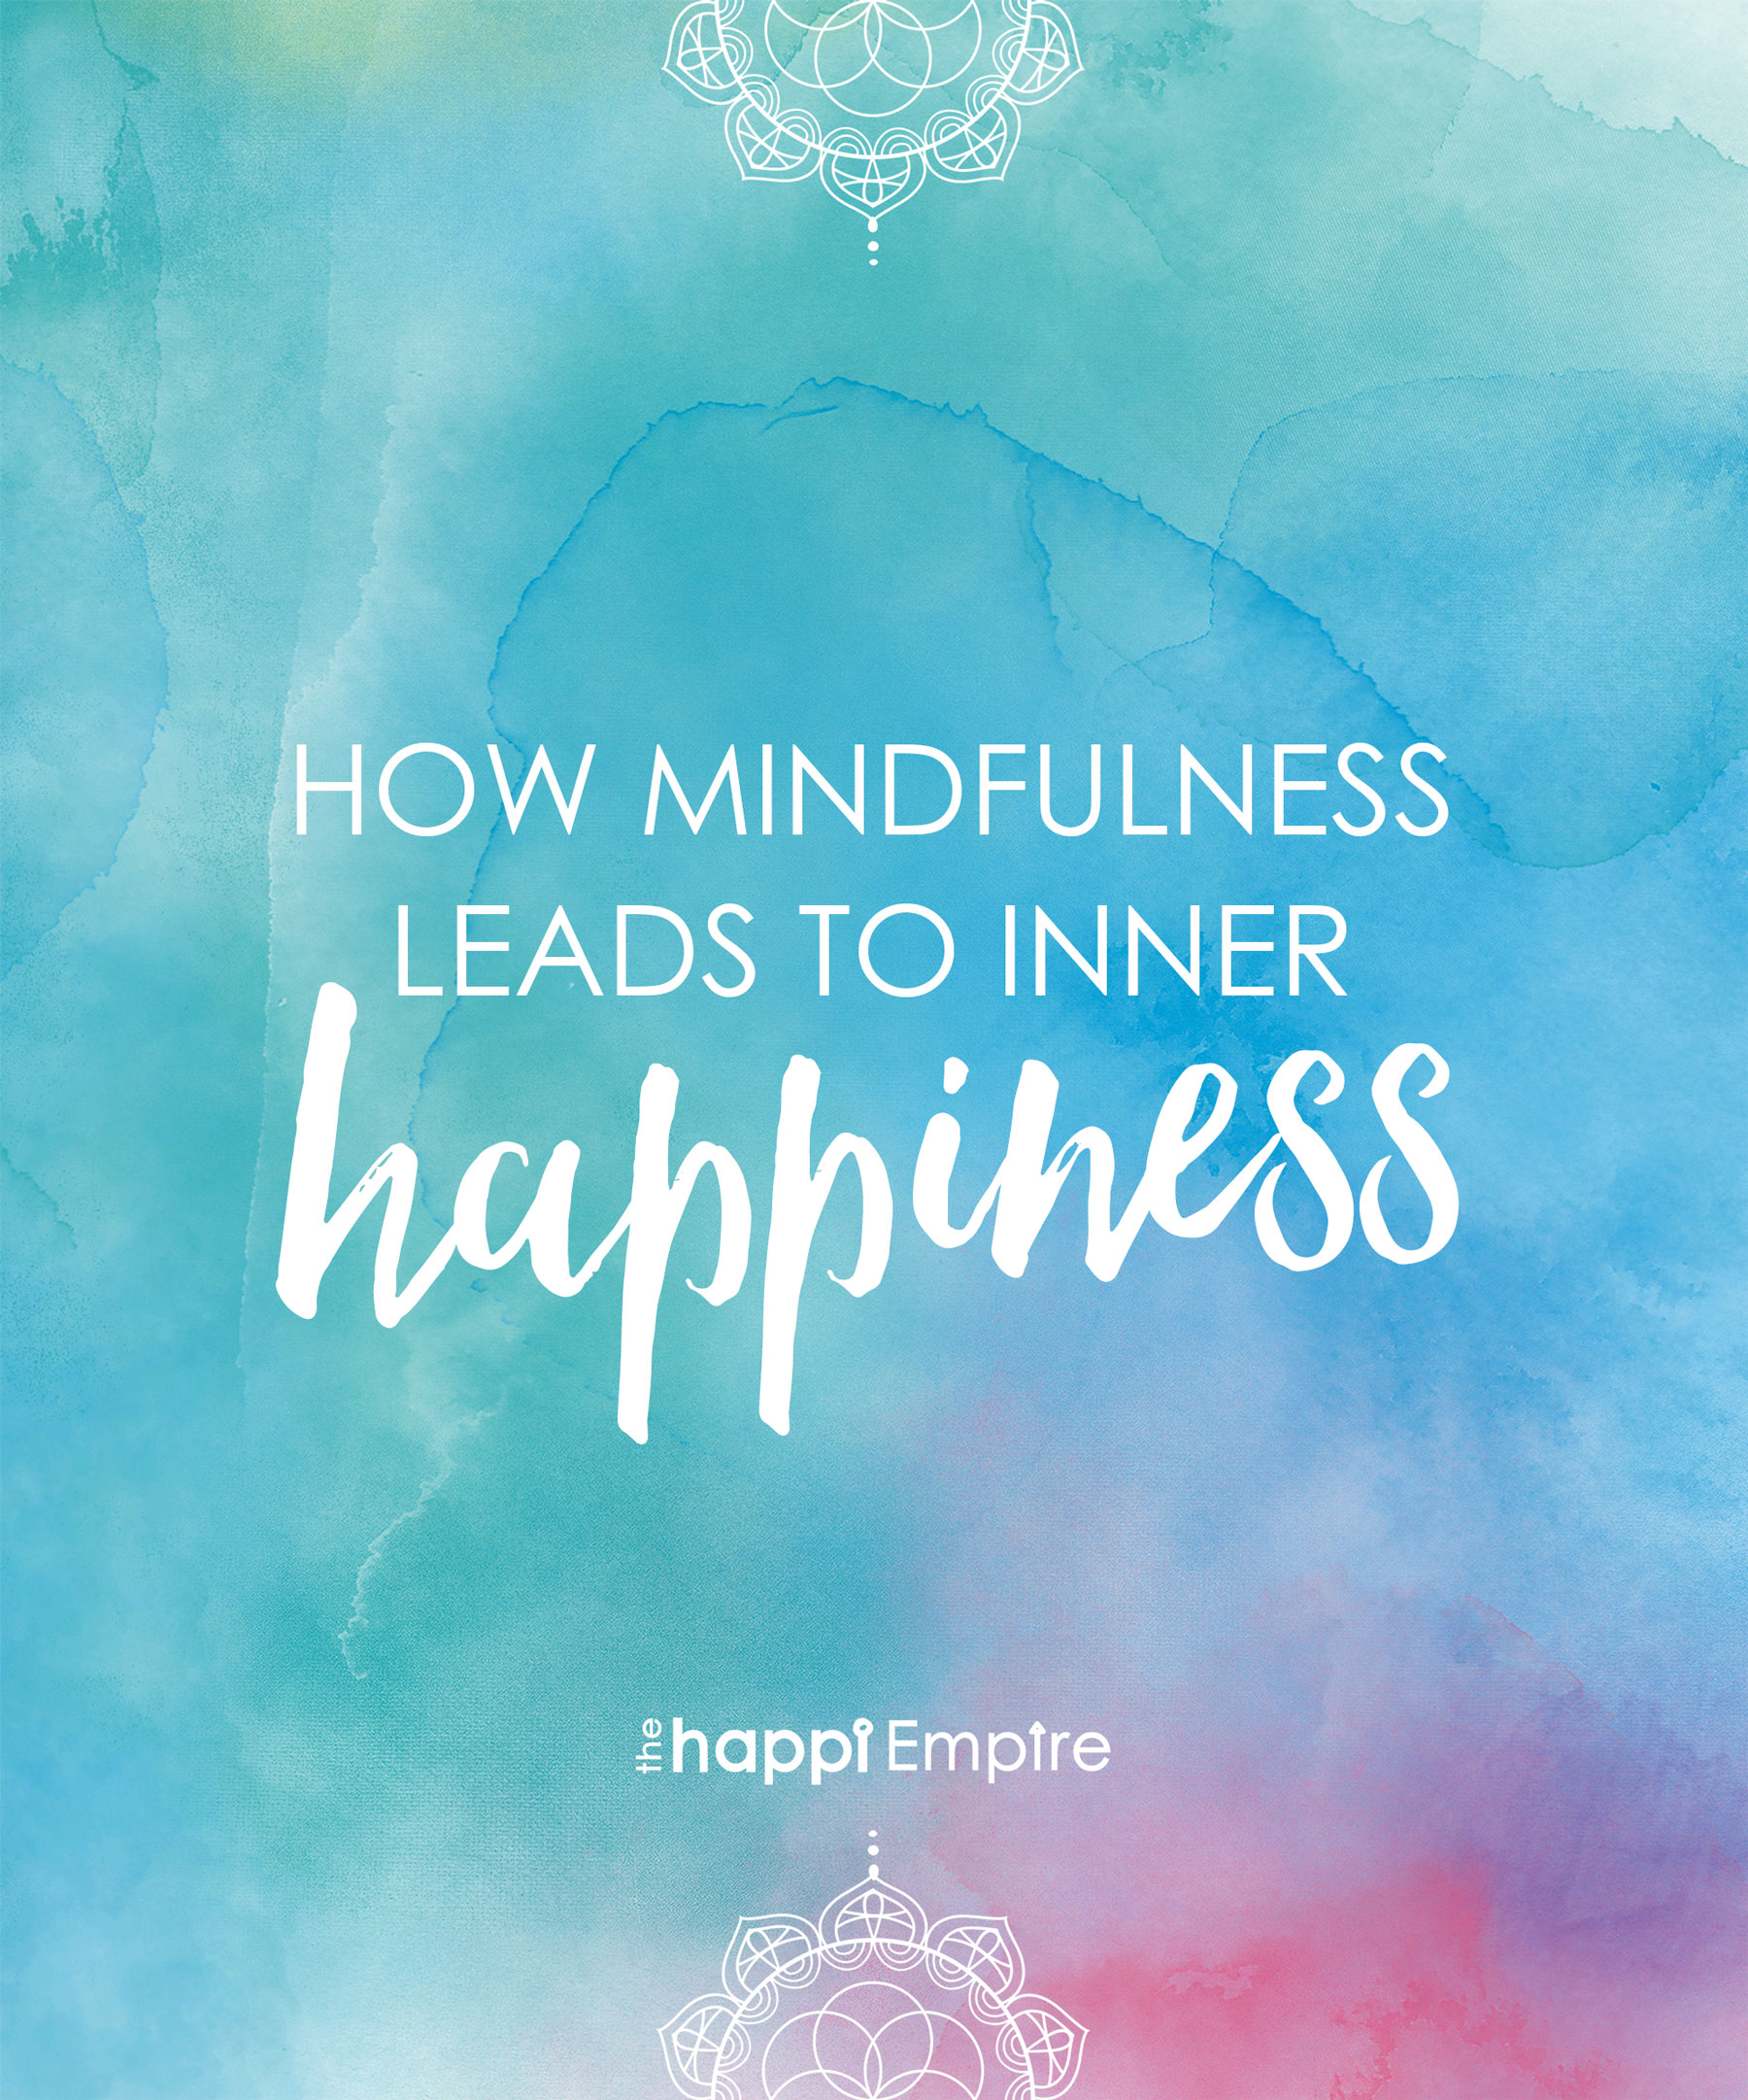 How mindfulness leads to inner happiness